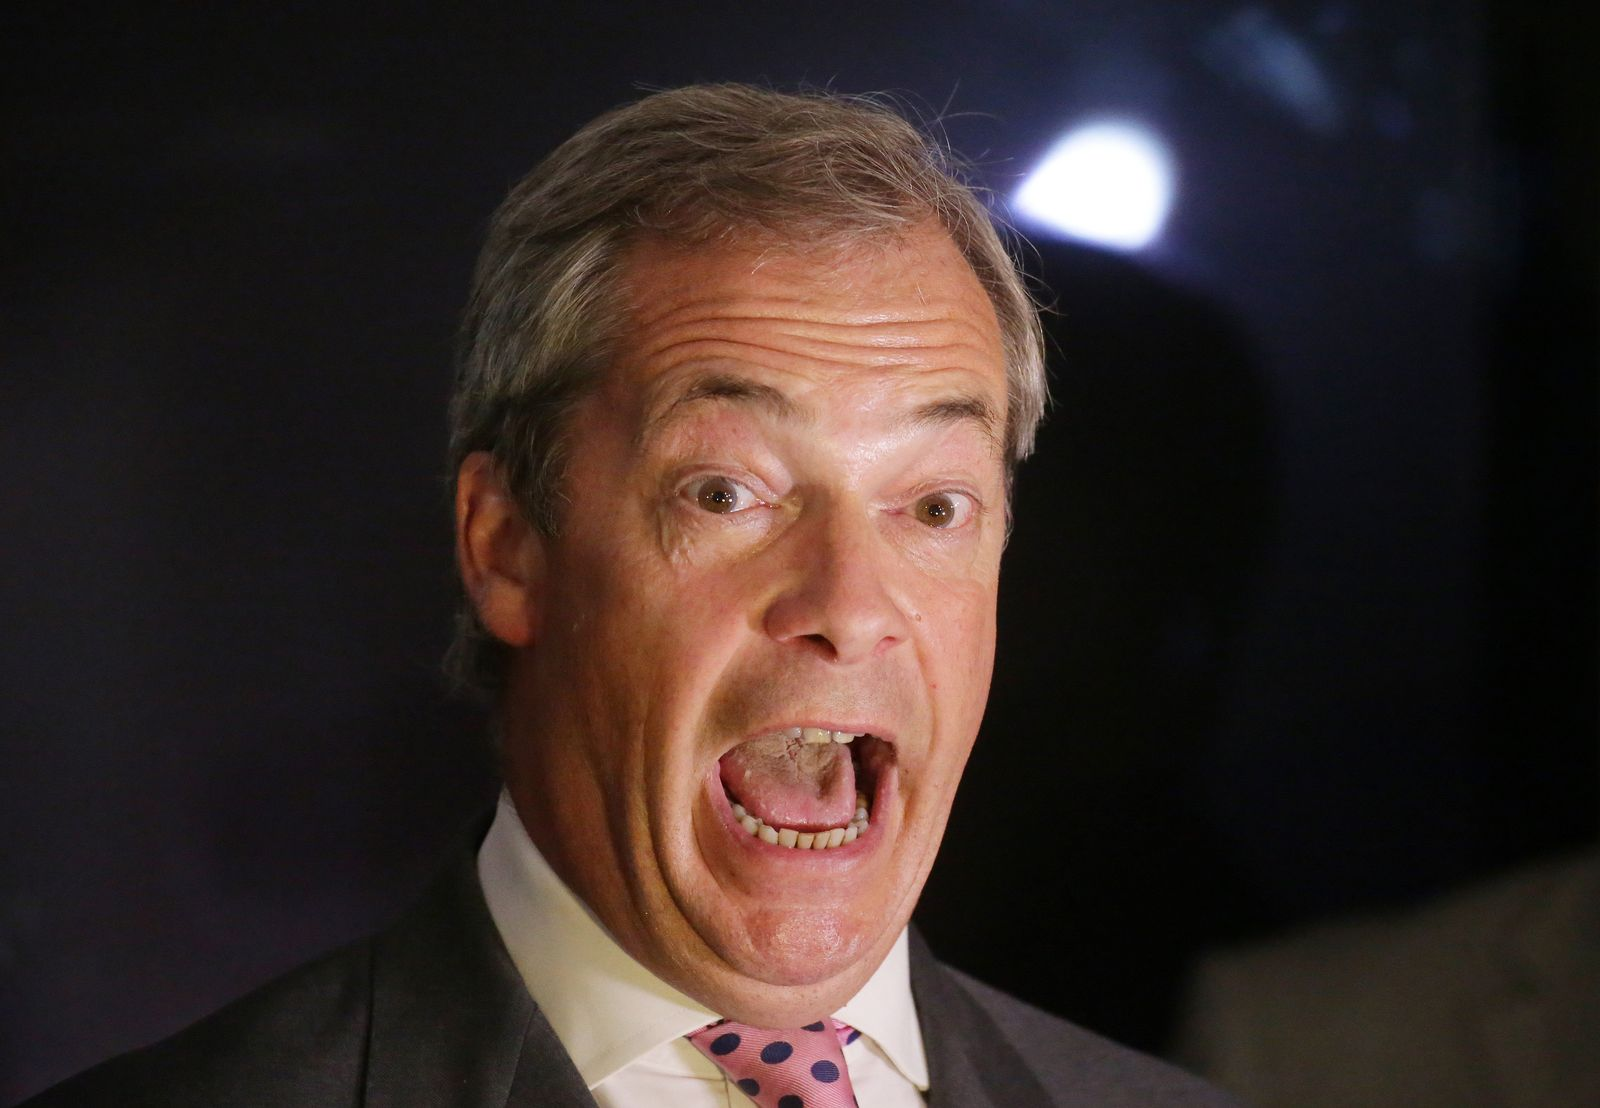 Nigel Farage Wahlparty